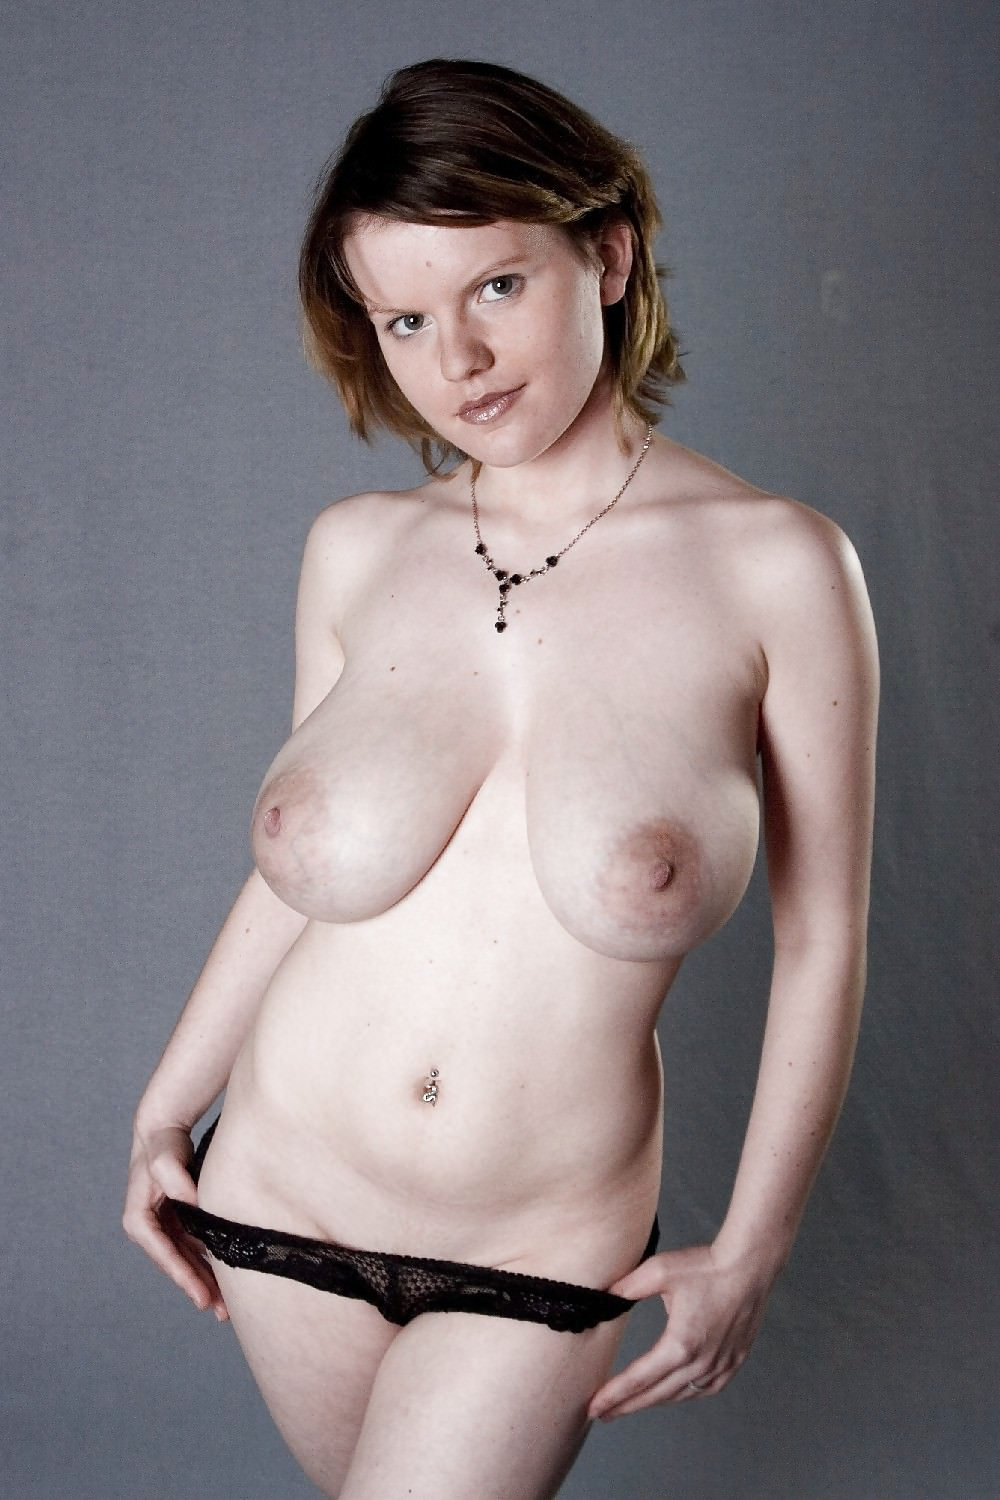 Saggy tits pic gallery 8